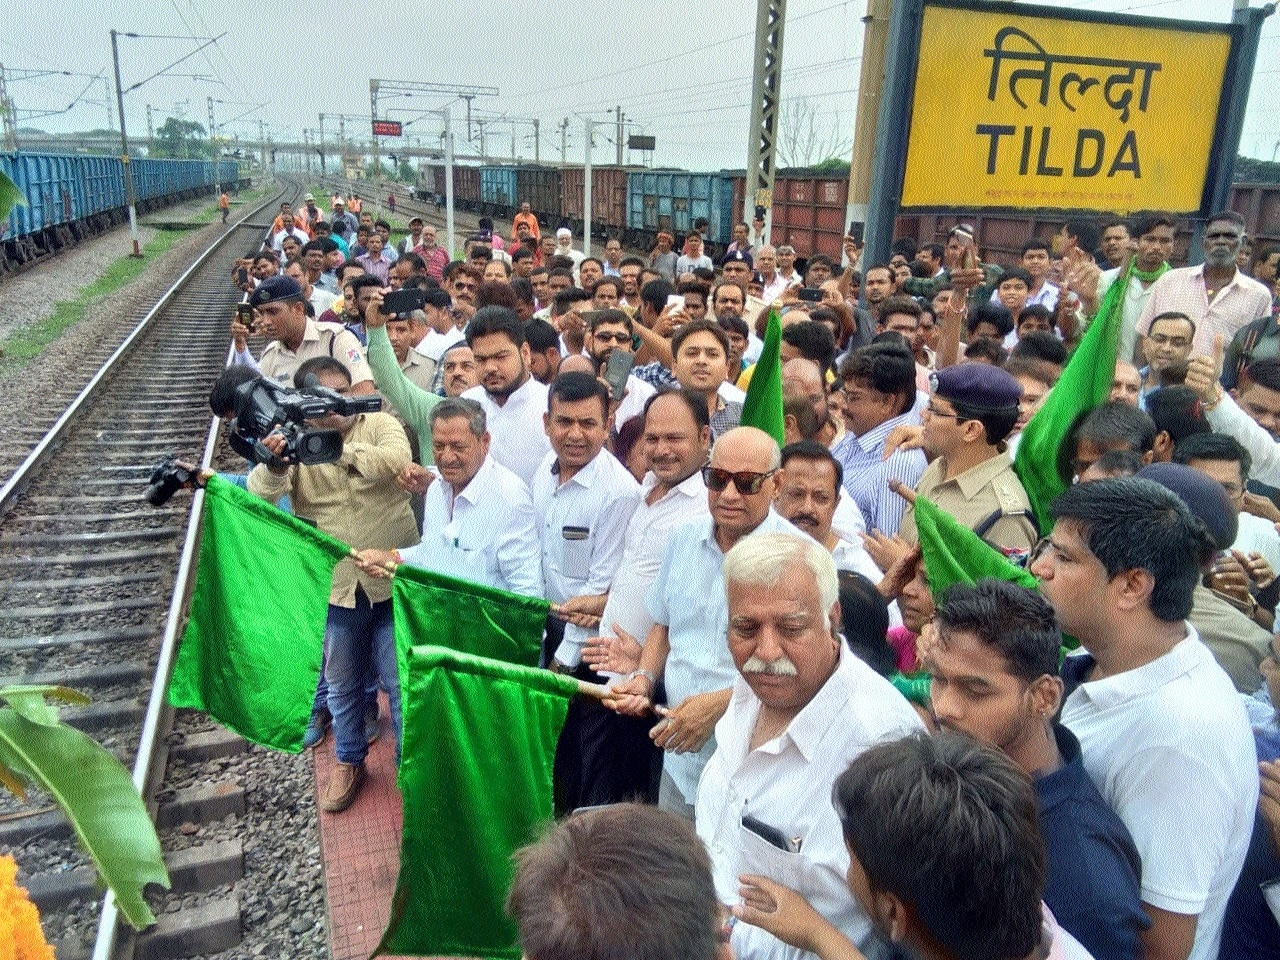 Ramesh Bais flags-off Durg-Jammu Tawi Express at Tilda